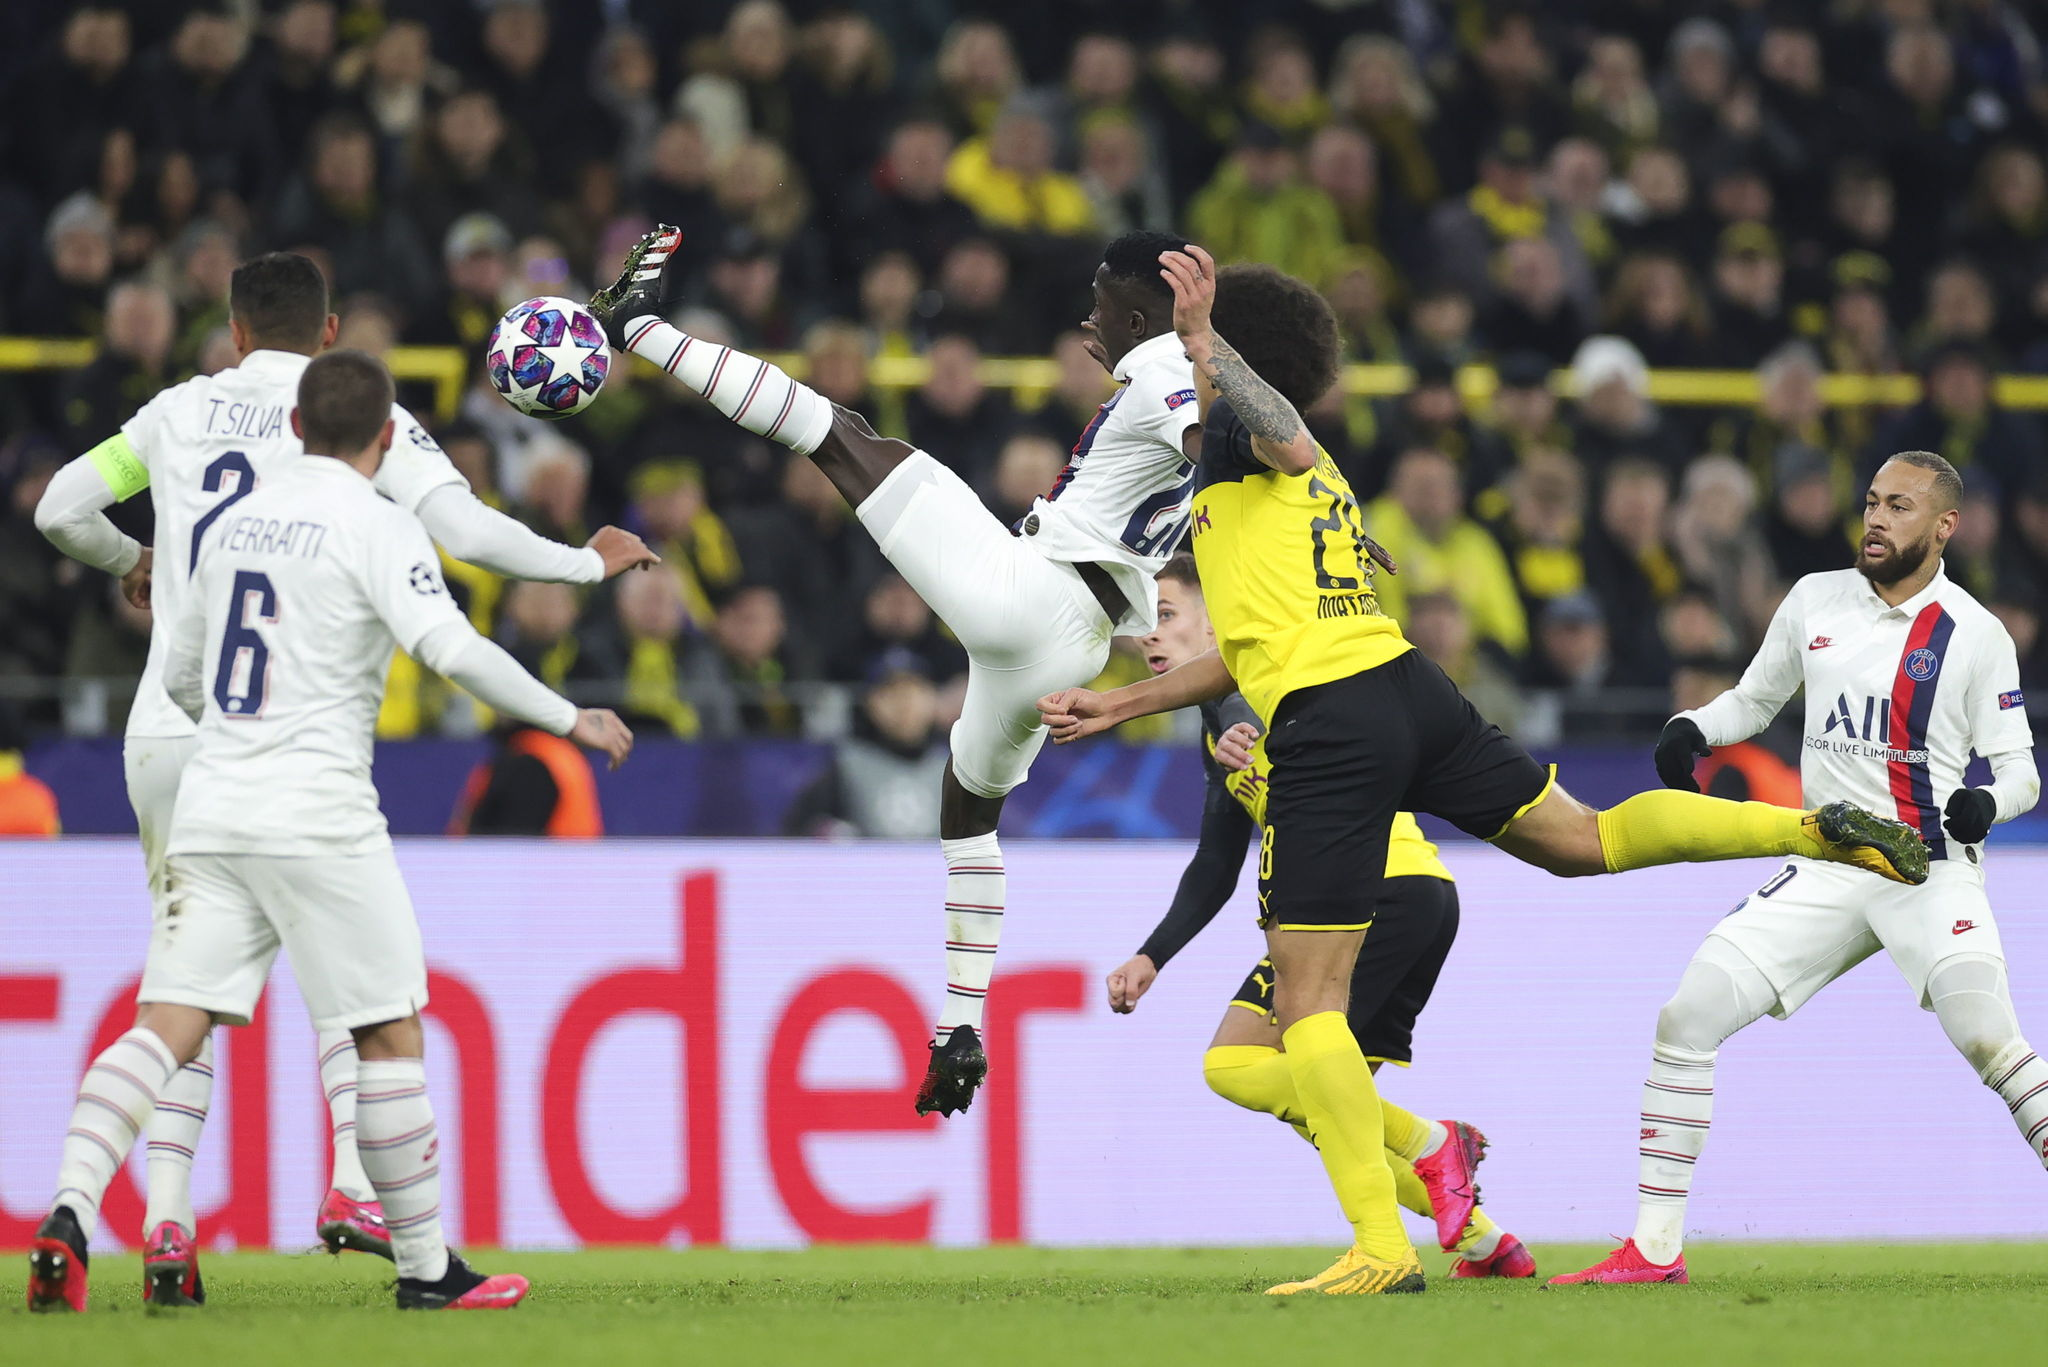 Dortmund (Germany), 18/02/2020.- PSGs Idrissa lt;HIT gt;Gueye lt;/HIT gt; (C) in action against Dortmunds Axel Witsel (2-R) during the UEFA Champions League round of 16 first leg soccer match between Borussia Dortmund and Paris Saint-Germain in Dortmund, Germany, 18 February 2020. (Liga de Campeones, Alemania, Rusia) EFE/EPA/FRIEDEMANN VOGEL